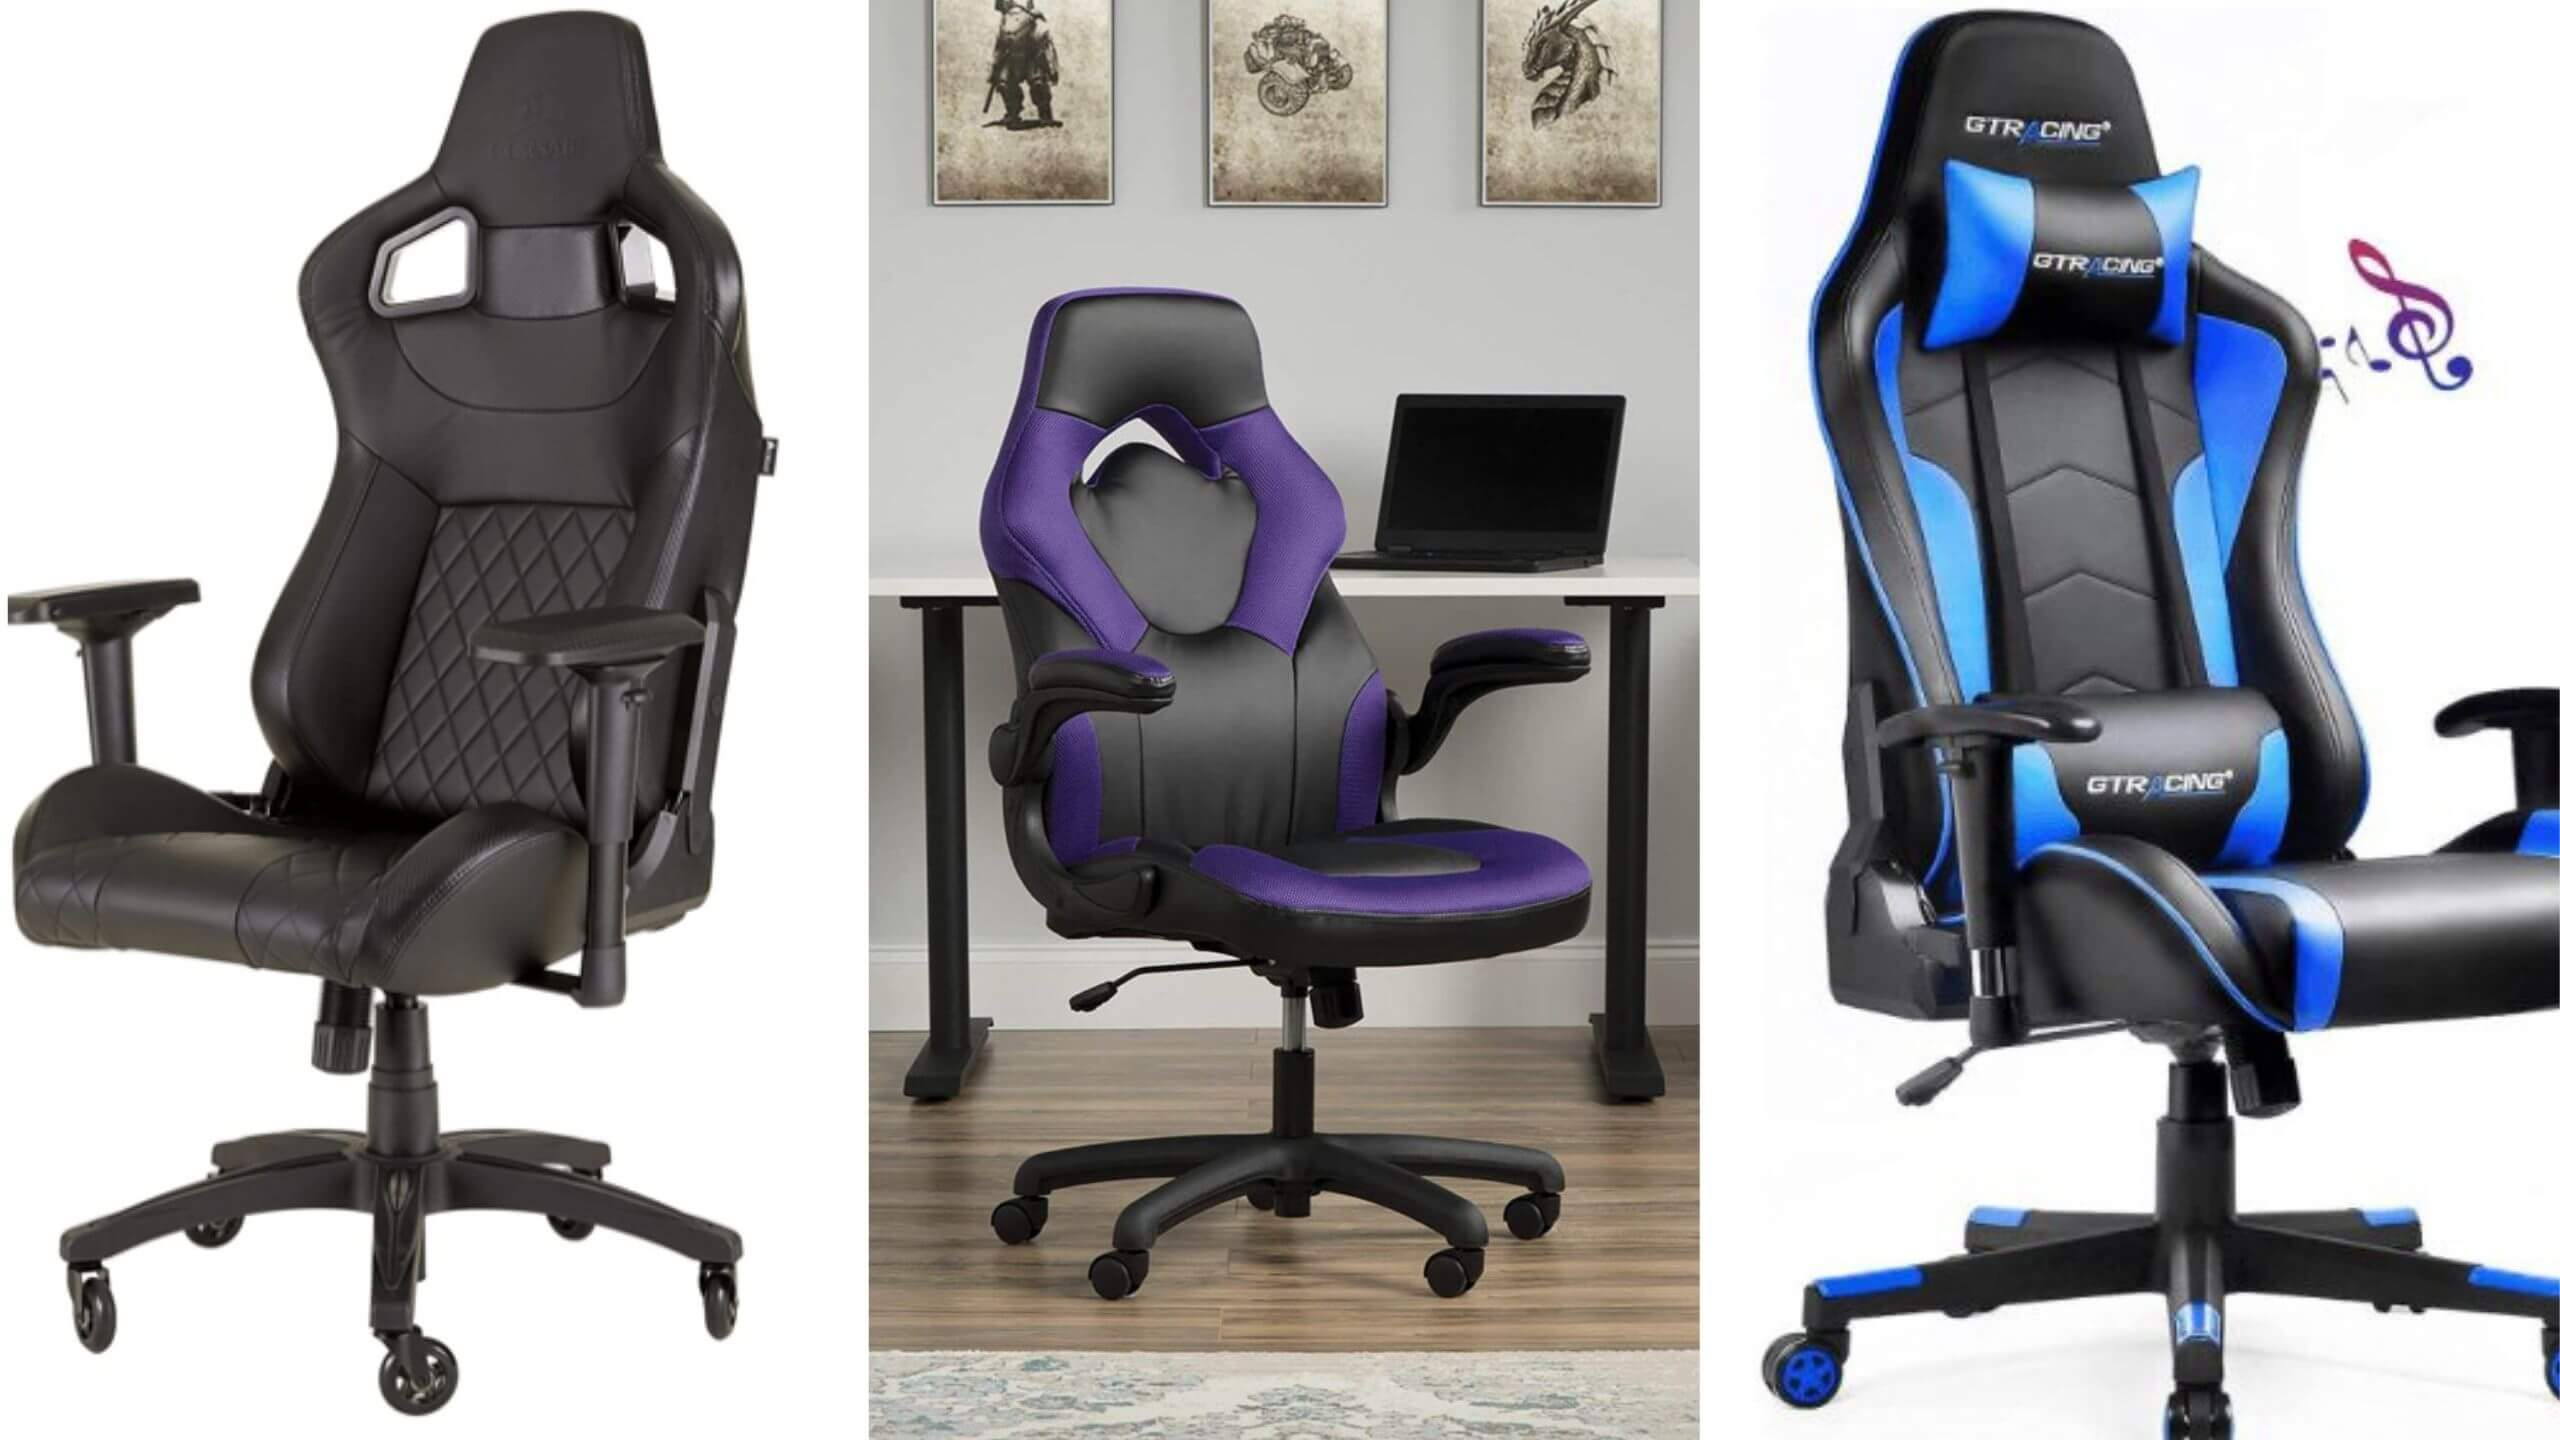 Best cheap Budget pc gaming chair under $100 $200 $300